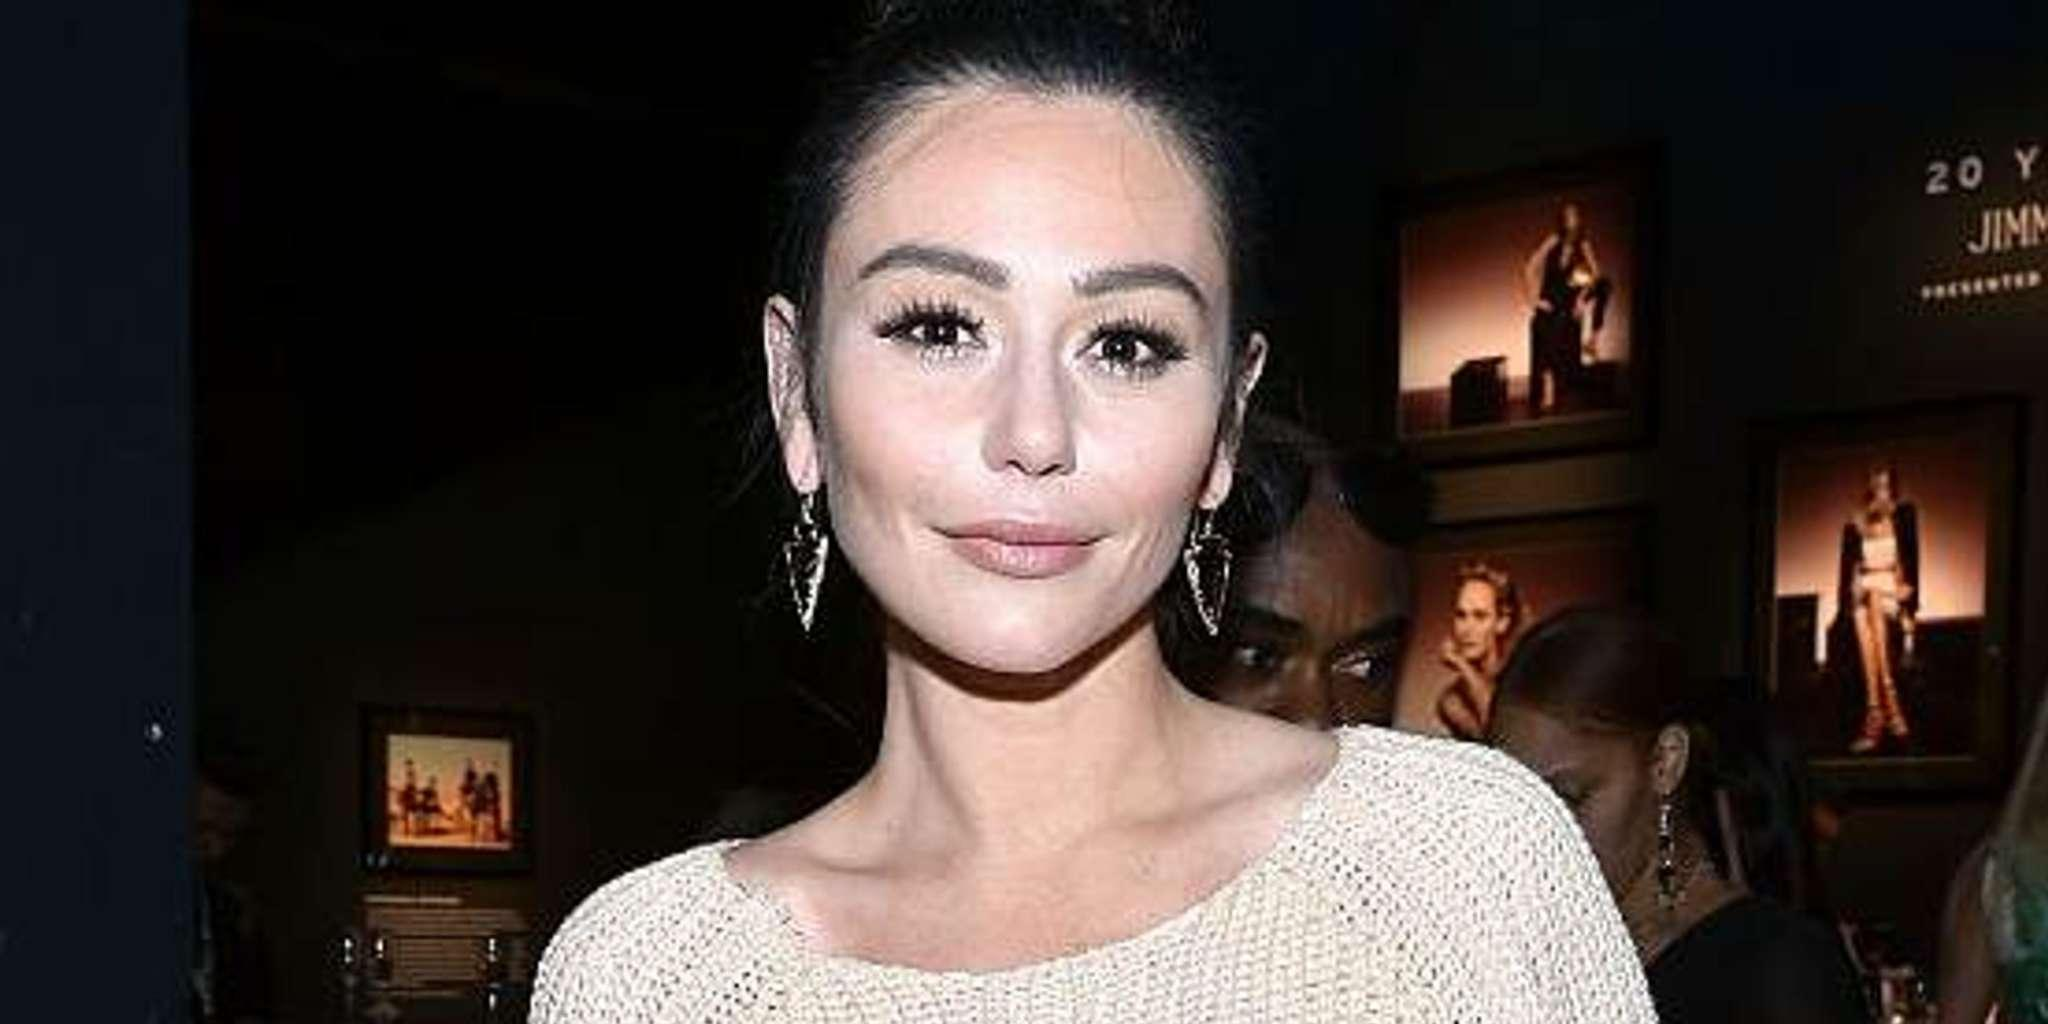 JWoww Addresses The Speculations She's Pregnant After Baby Bump Pics!